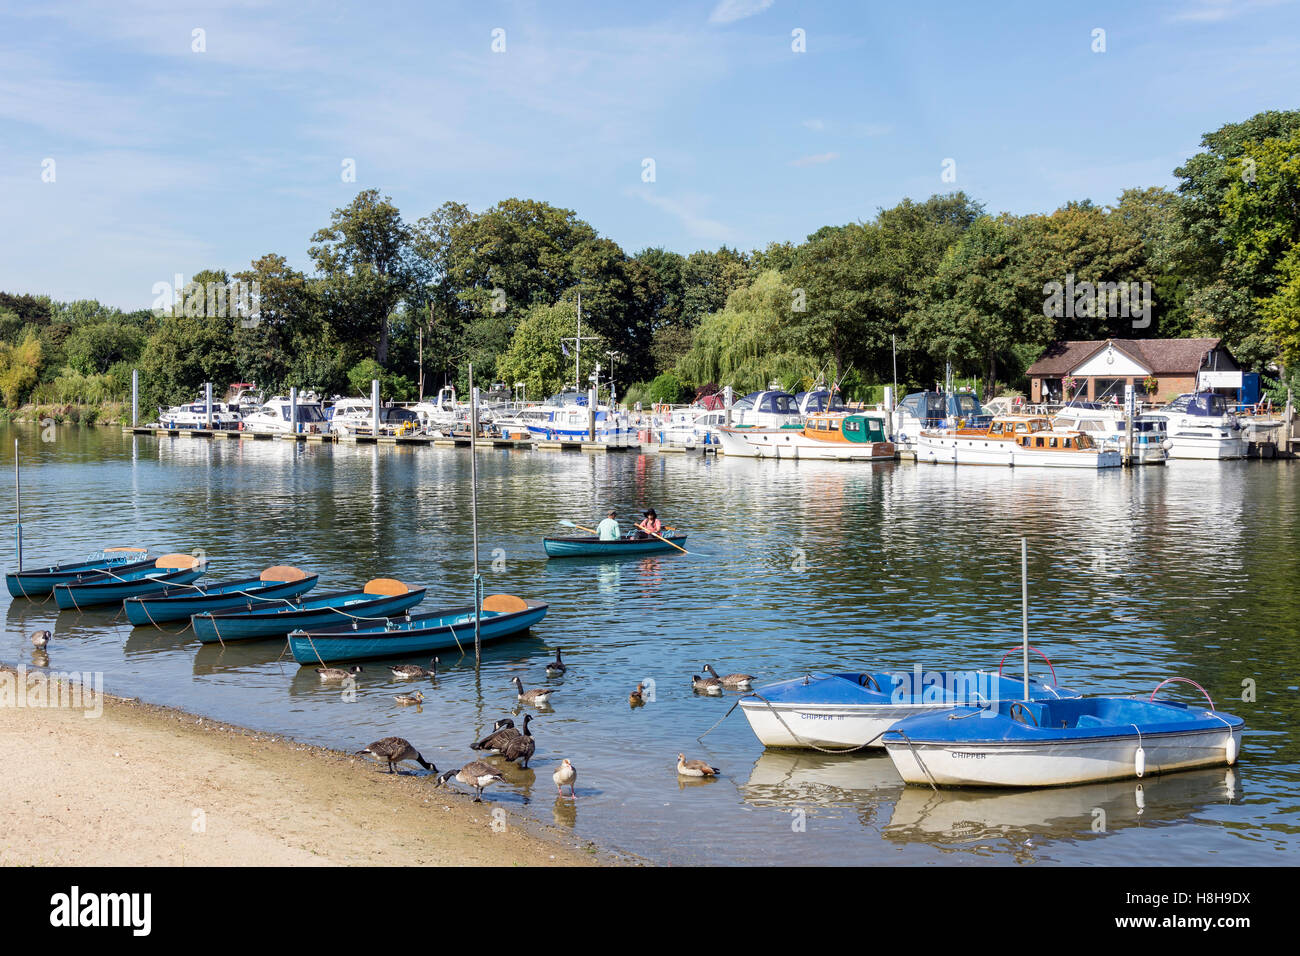 Rowing boats on River Thames from East Molesey, Surrey, England, United Kingdom - Stock Image